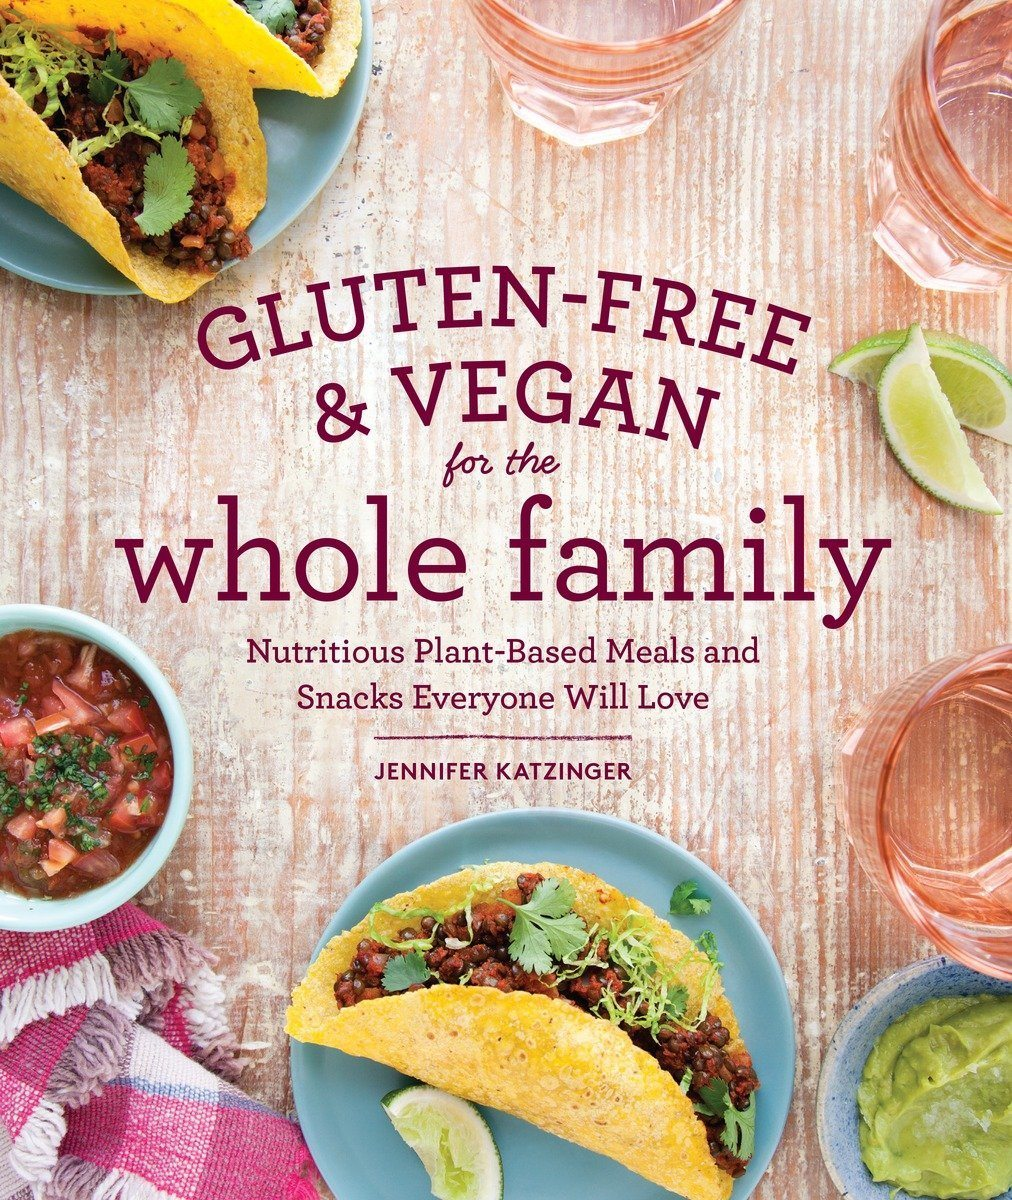 Gluten-Free and Vegan for the Whole Family